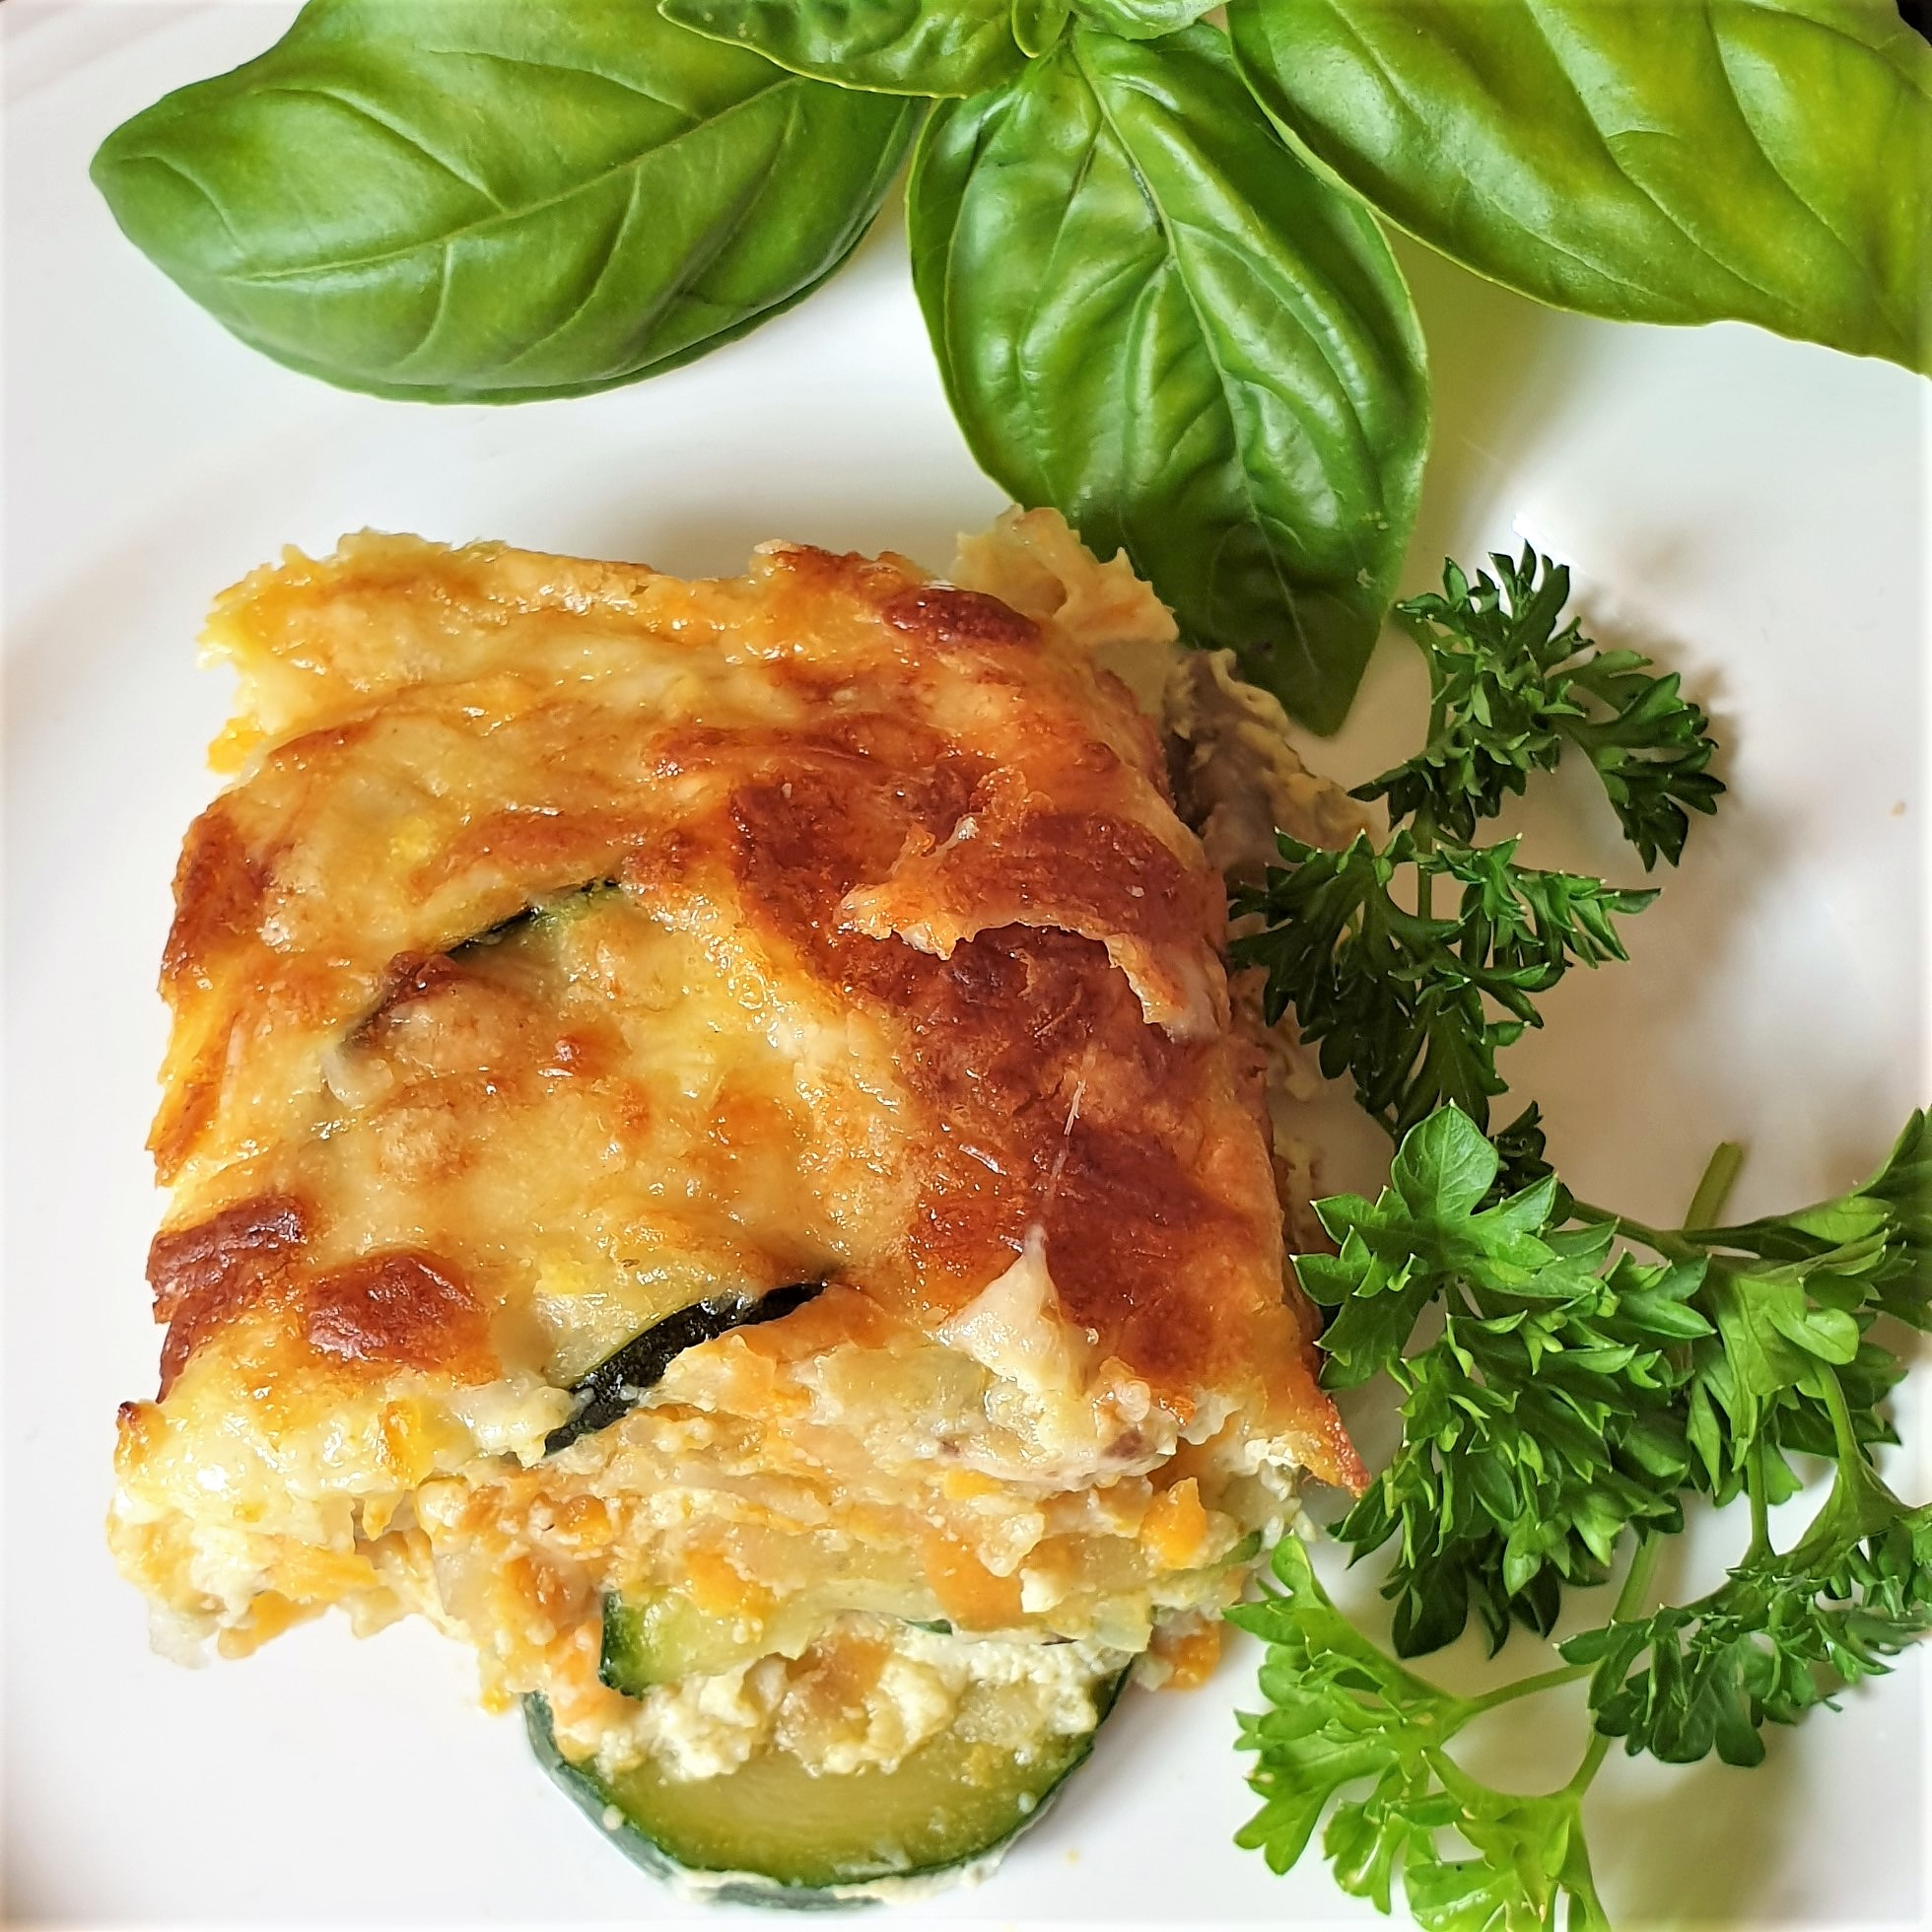 A slice of crustless vegetable quiche on a plate.